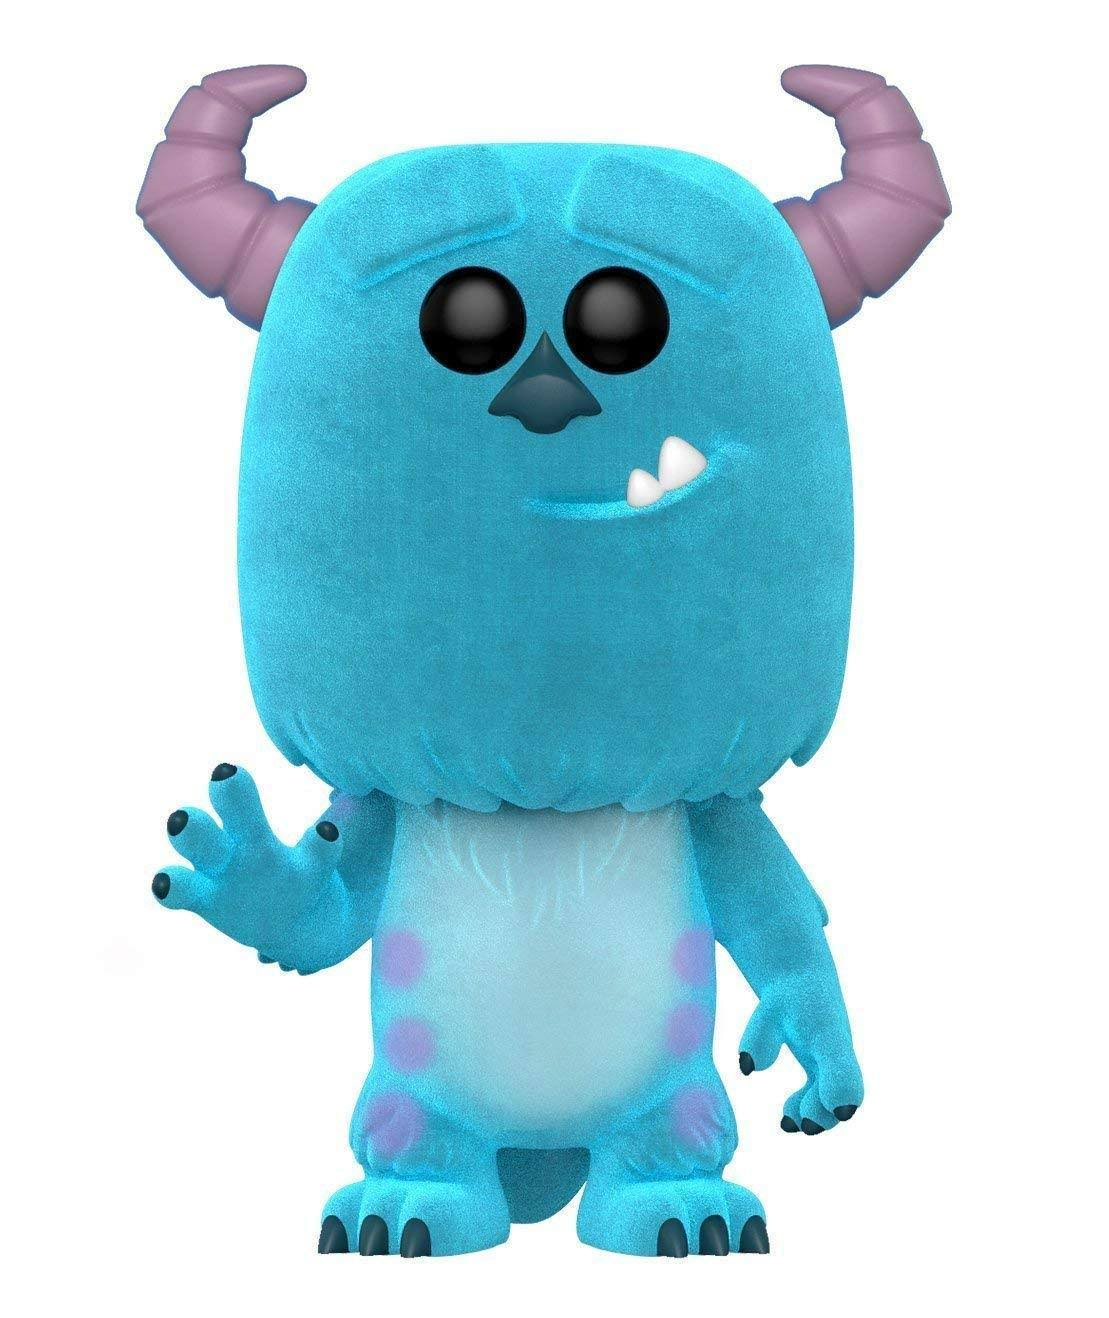 Funko Pop! Monsters Inc Sulley Flocked Pop Vinyl Figure